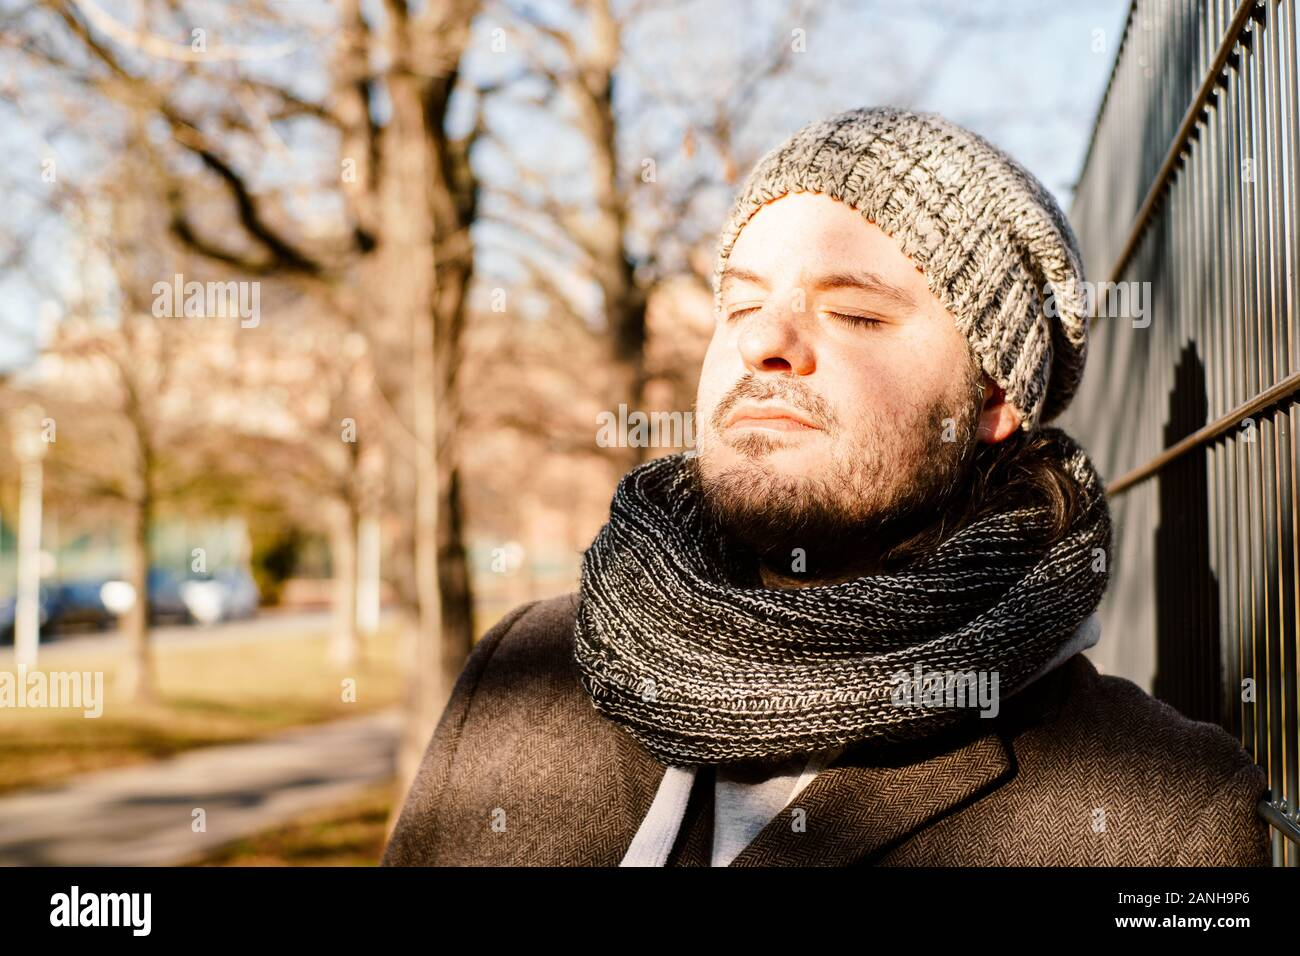 Man leans against a fence outside and enjoys the sun in the cold season. Contemplation, serenity and relaxing concept. Stock Photo